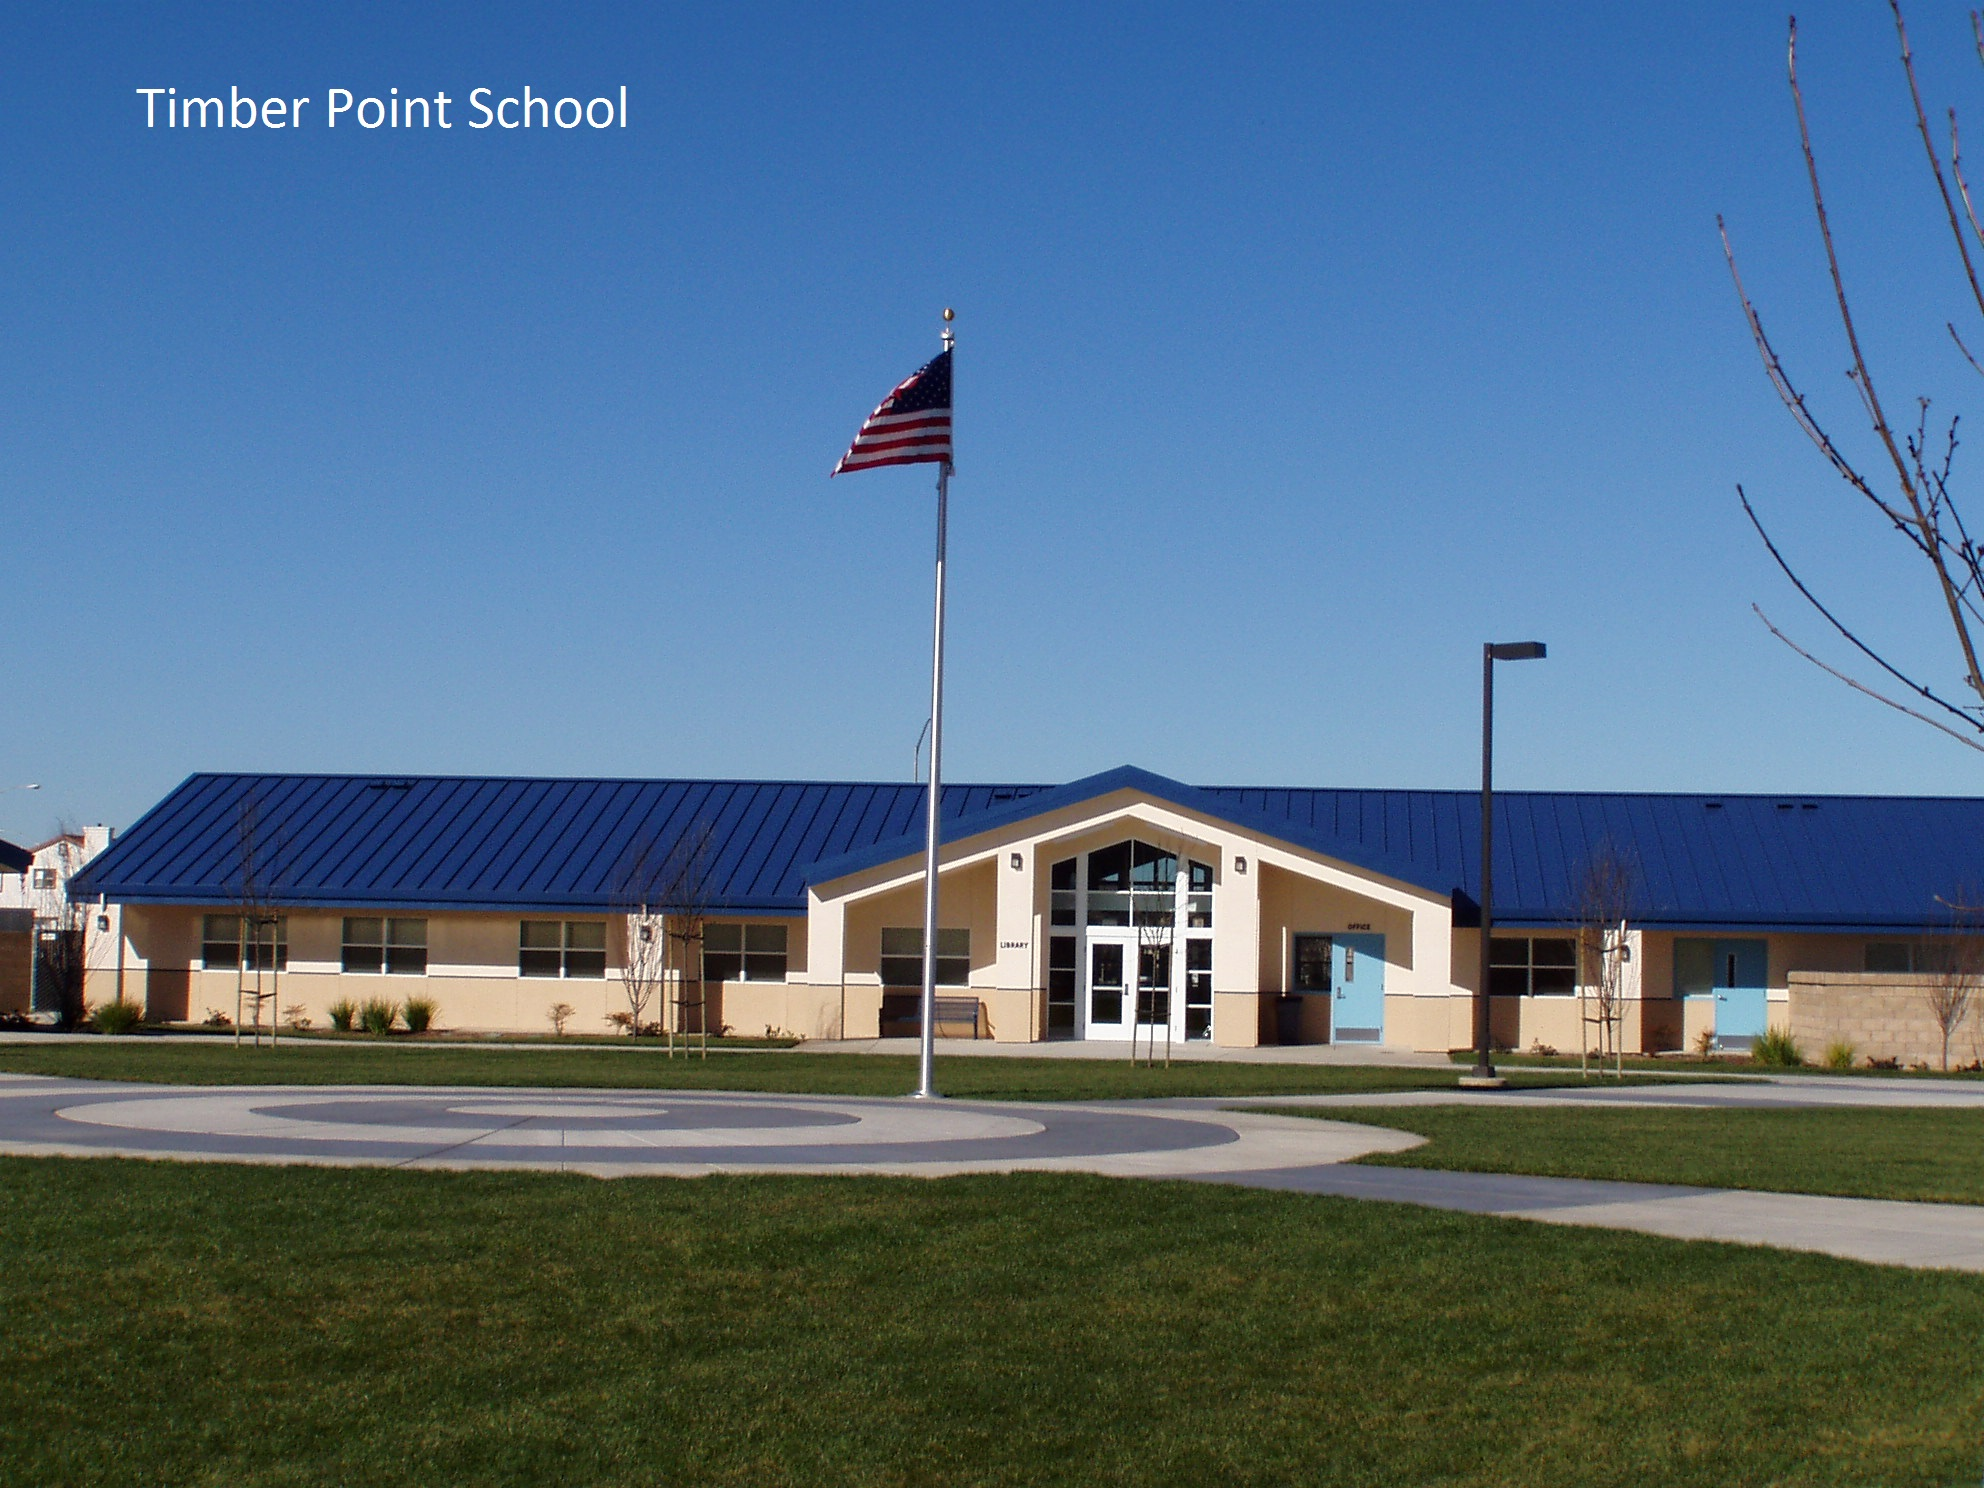 Timber Point Sch w name.jpg